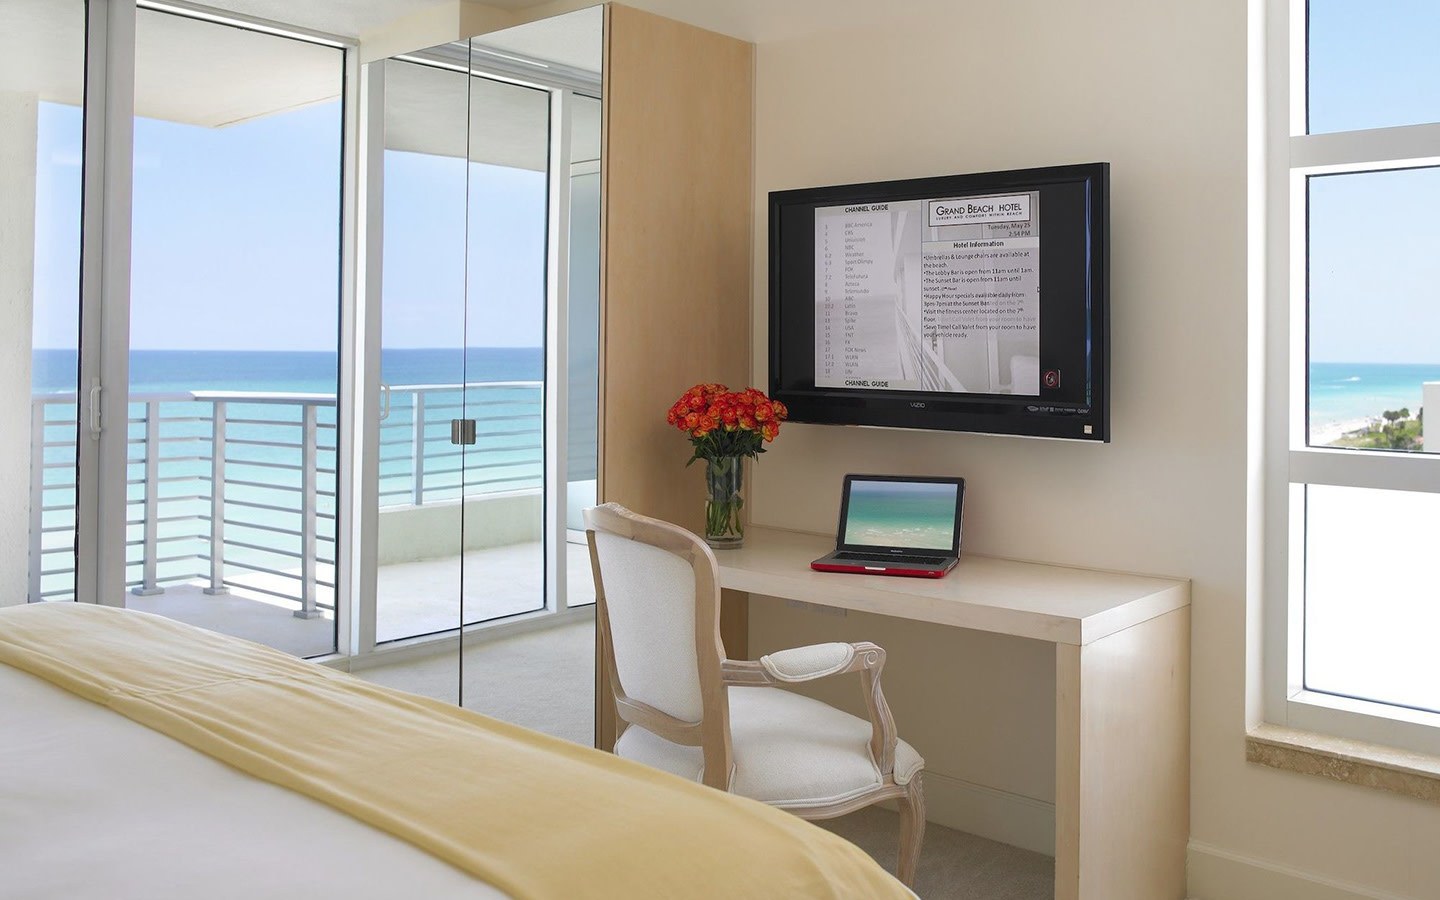 Grand Beach Hotel Renovated Suites